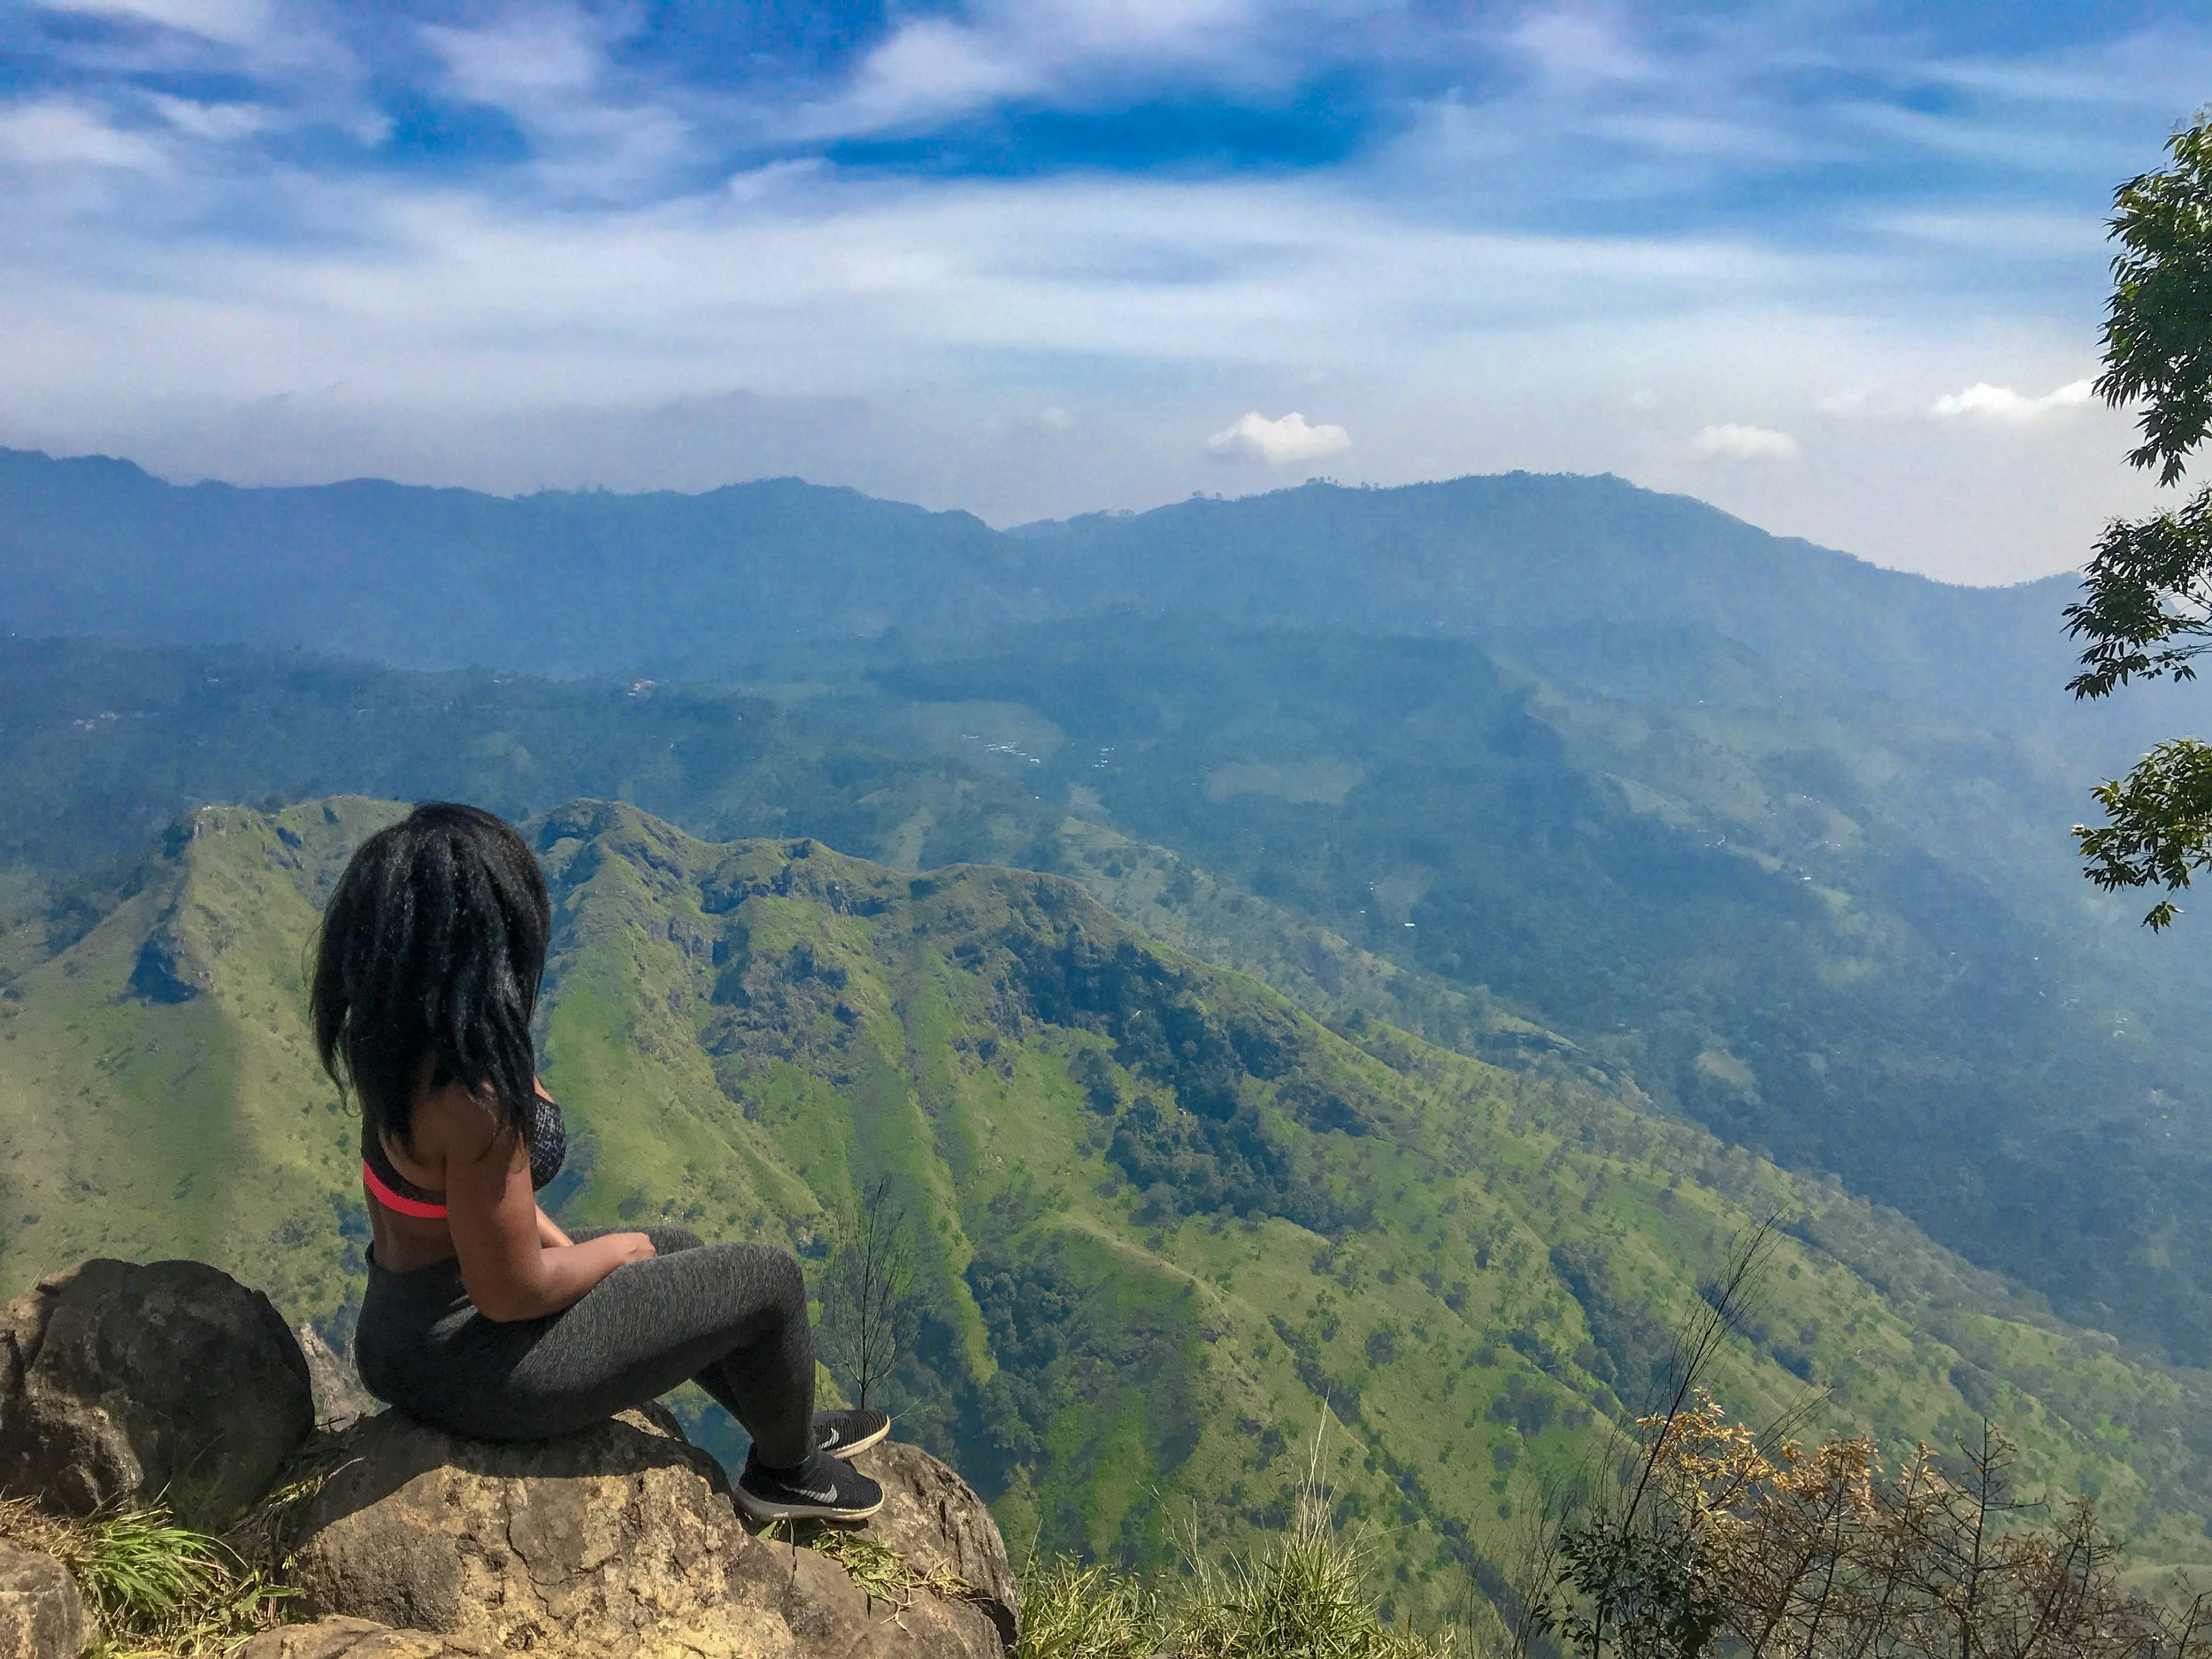 Ella, Sri Lanka - where I spent 1 month as a nomad working on my business while exploring a new country!